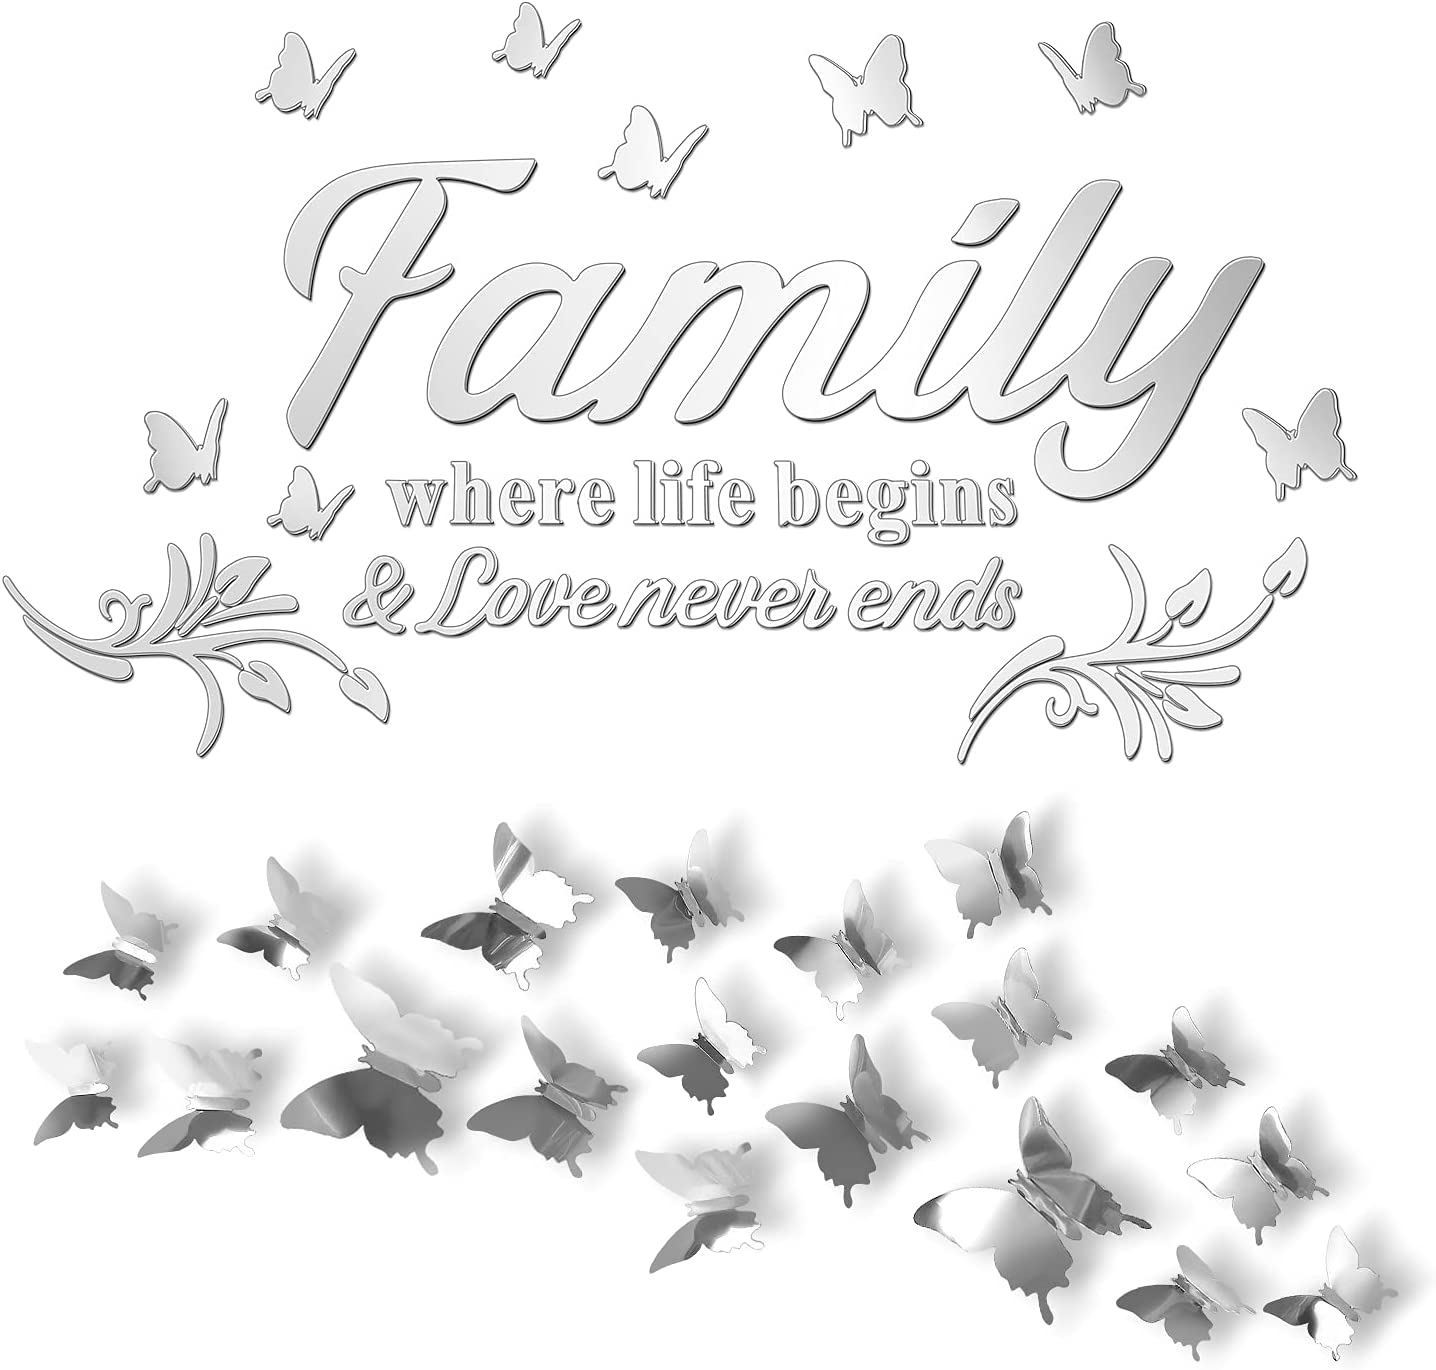 3D Acrylic Mirror Wall Decor Stickers, Silver Family Letters Stickers with Extra 24 Pcs 3D Butterfly Removable Mural Stickers, Wall Art Decals DIY for Home Dorm Living Room Mirror Wall Decoration